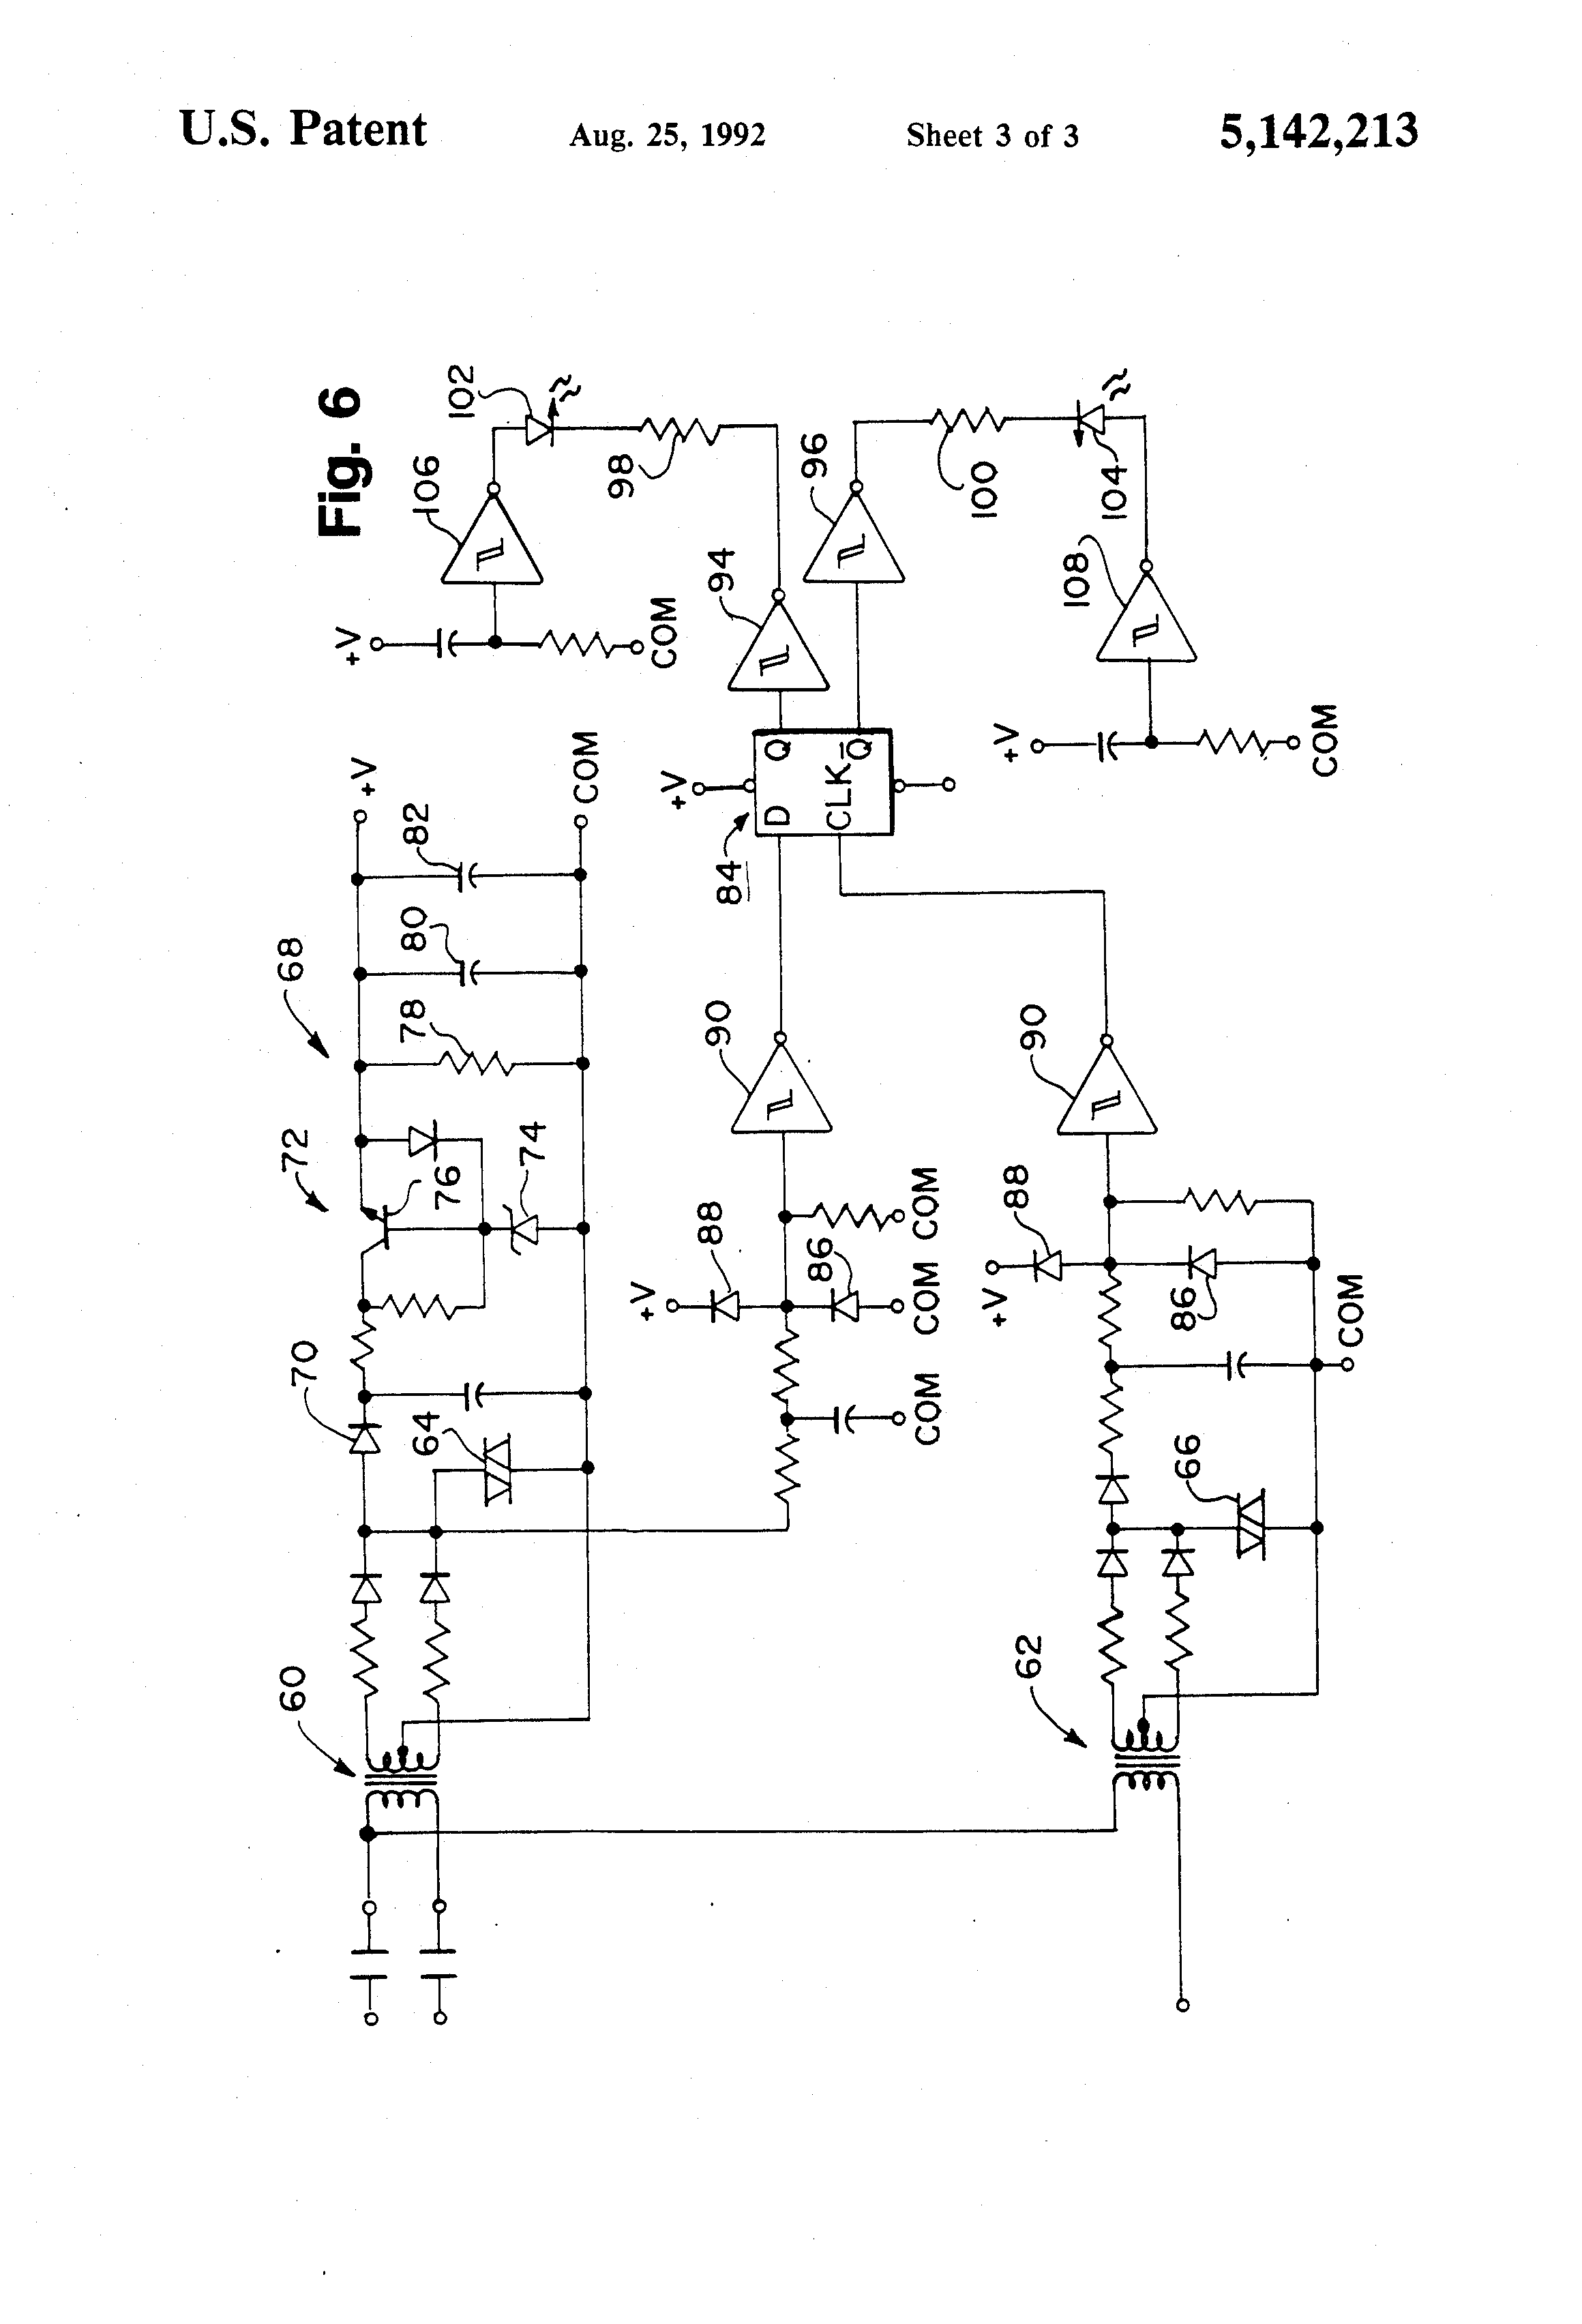 wiring diagram of wye delta motor control double duplex outlet patente us5142213 open transition